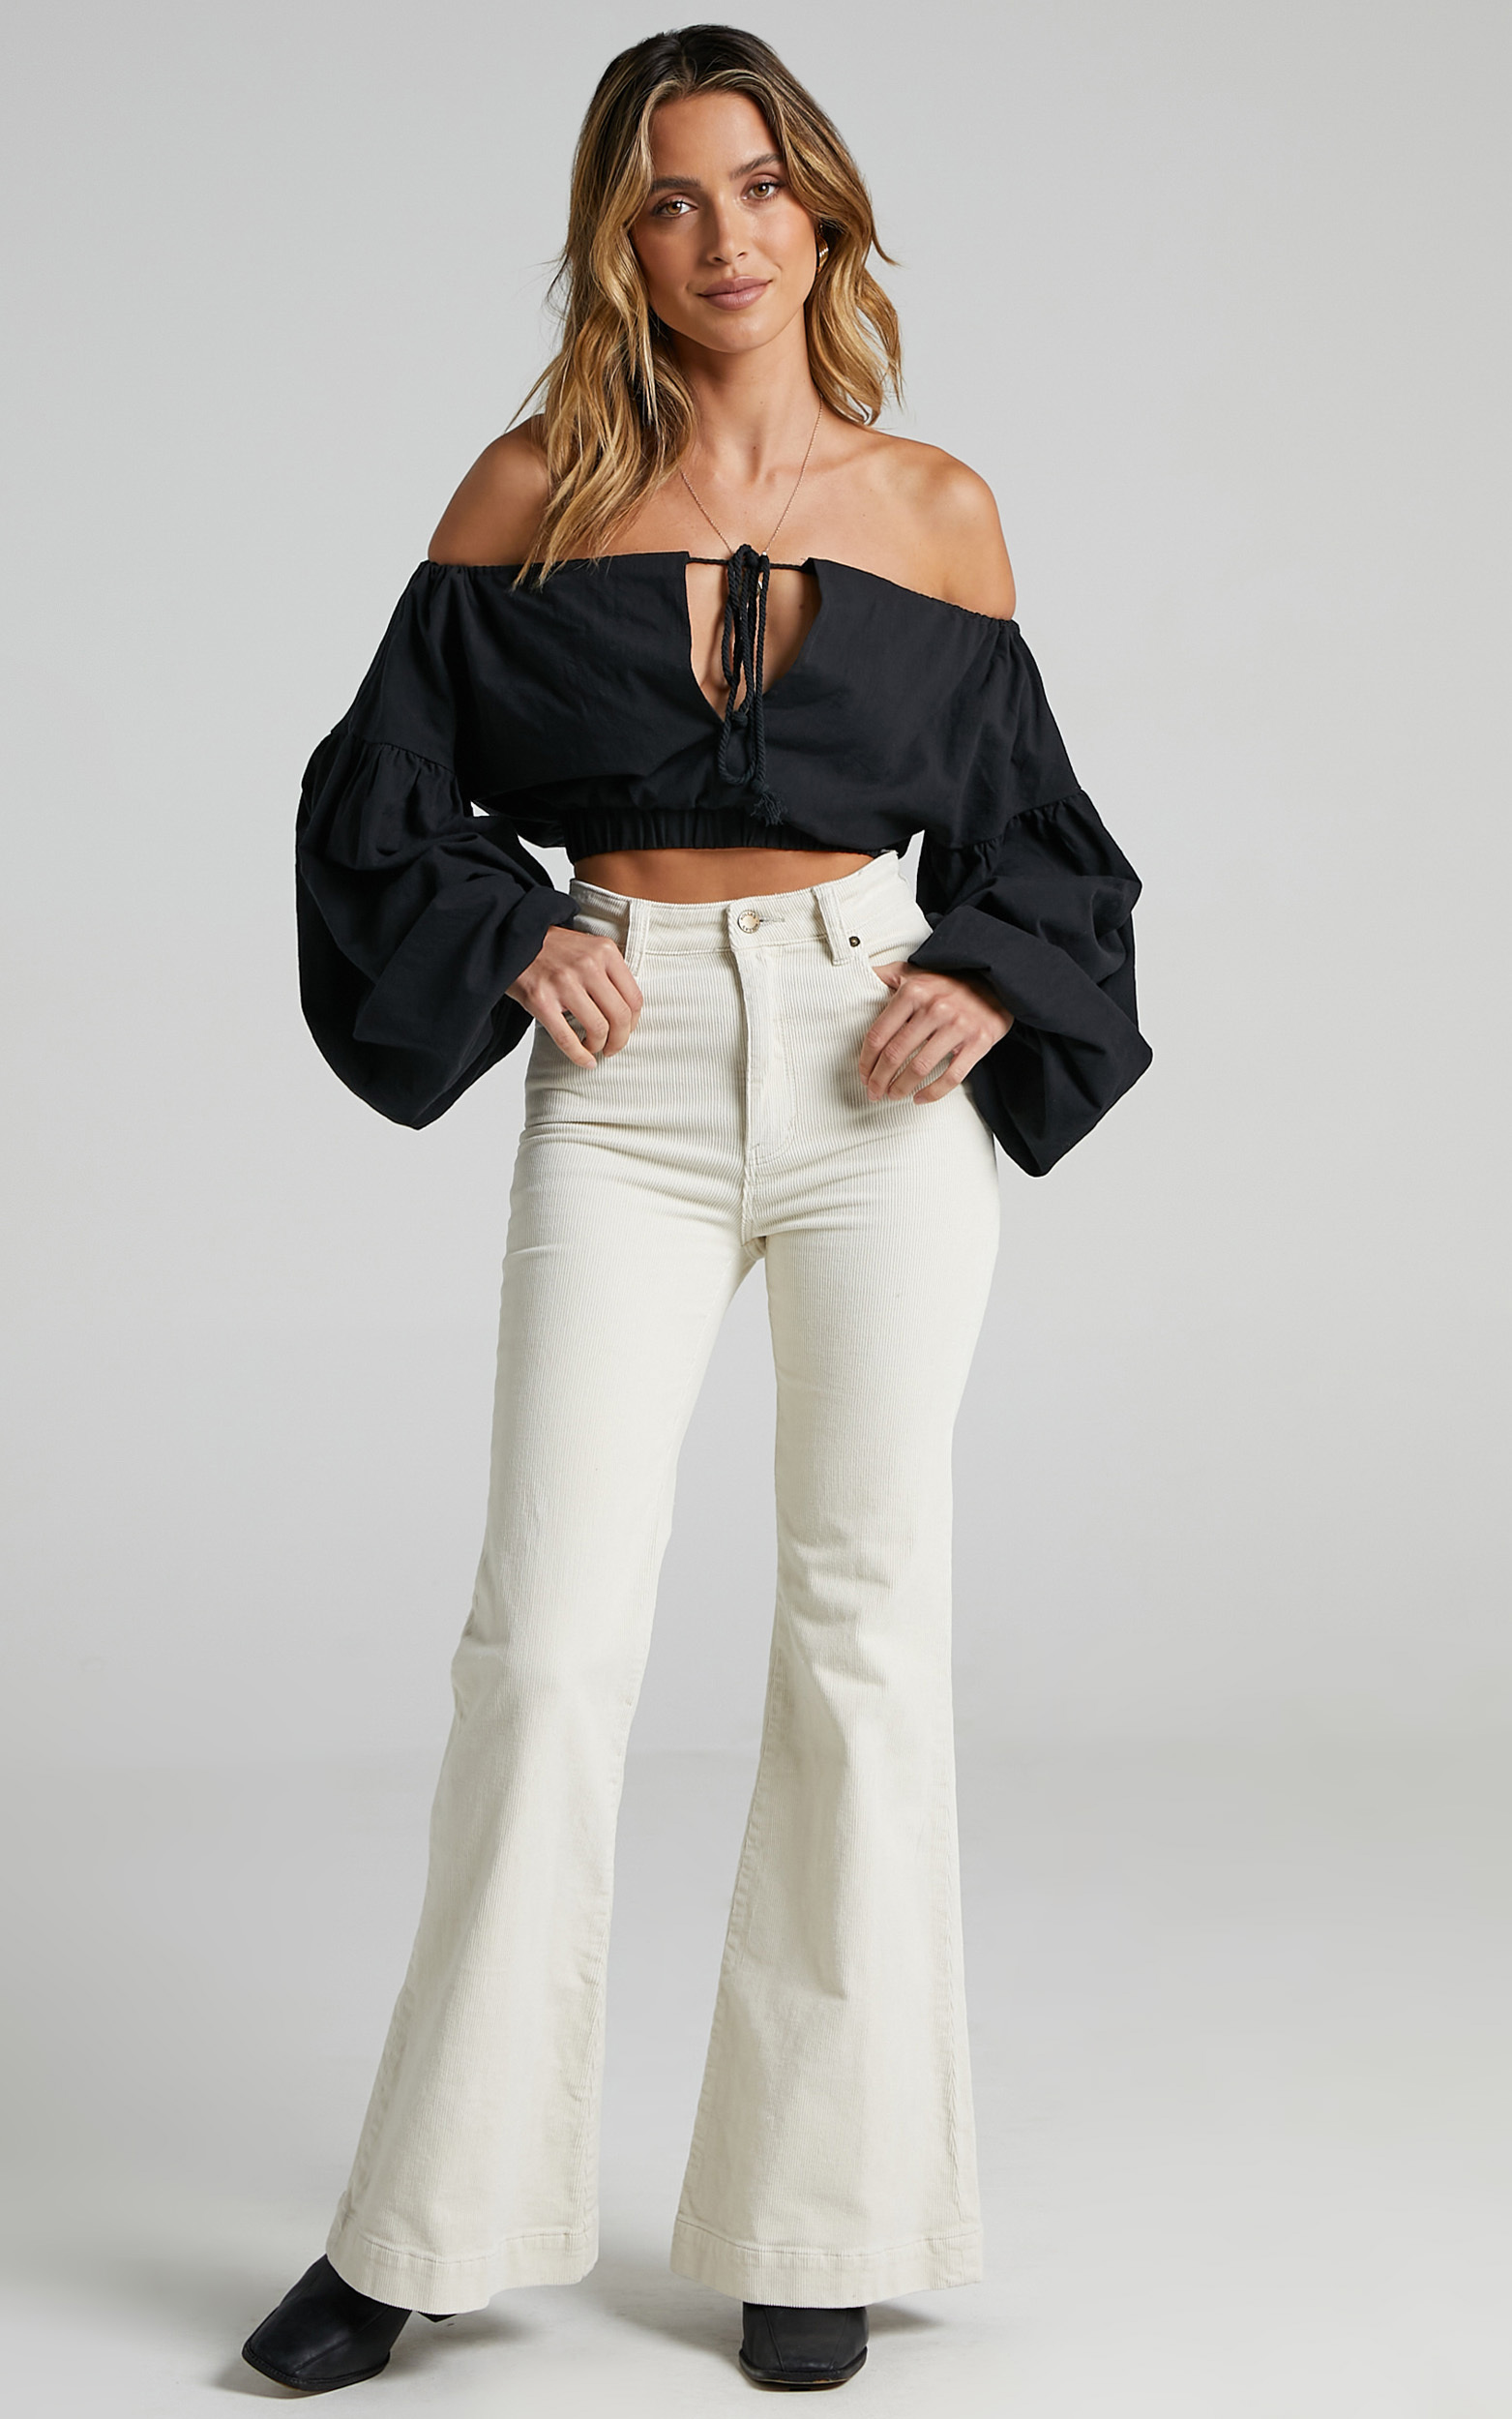 Sully Top in Black - 16, BLK1, hi-res image number null